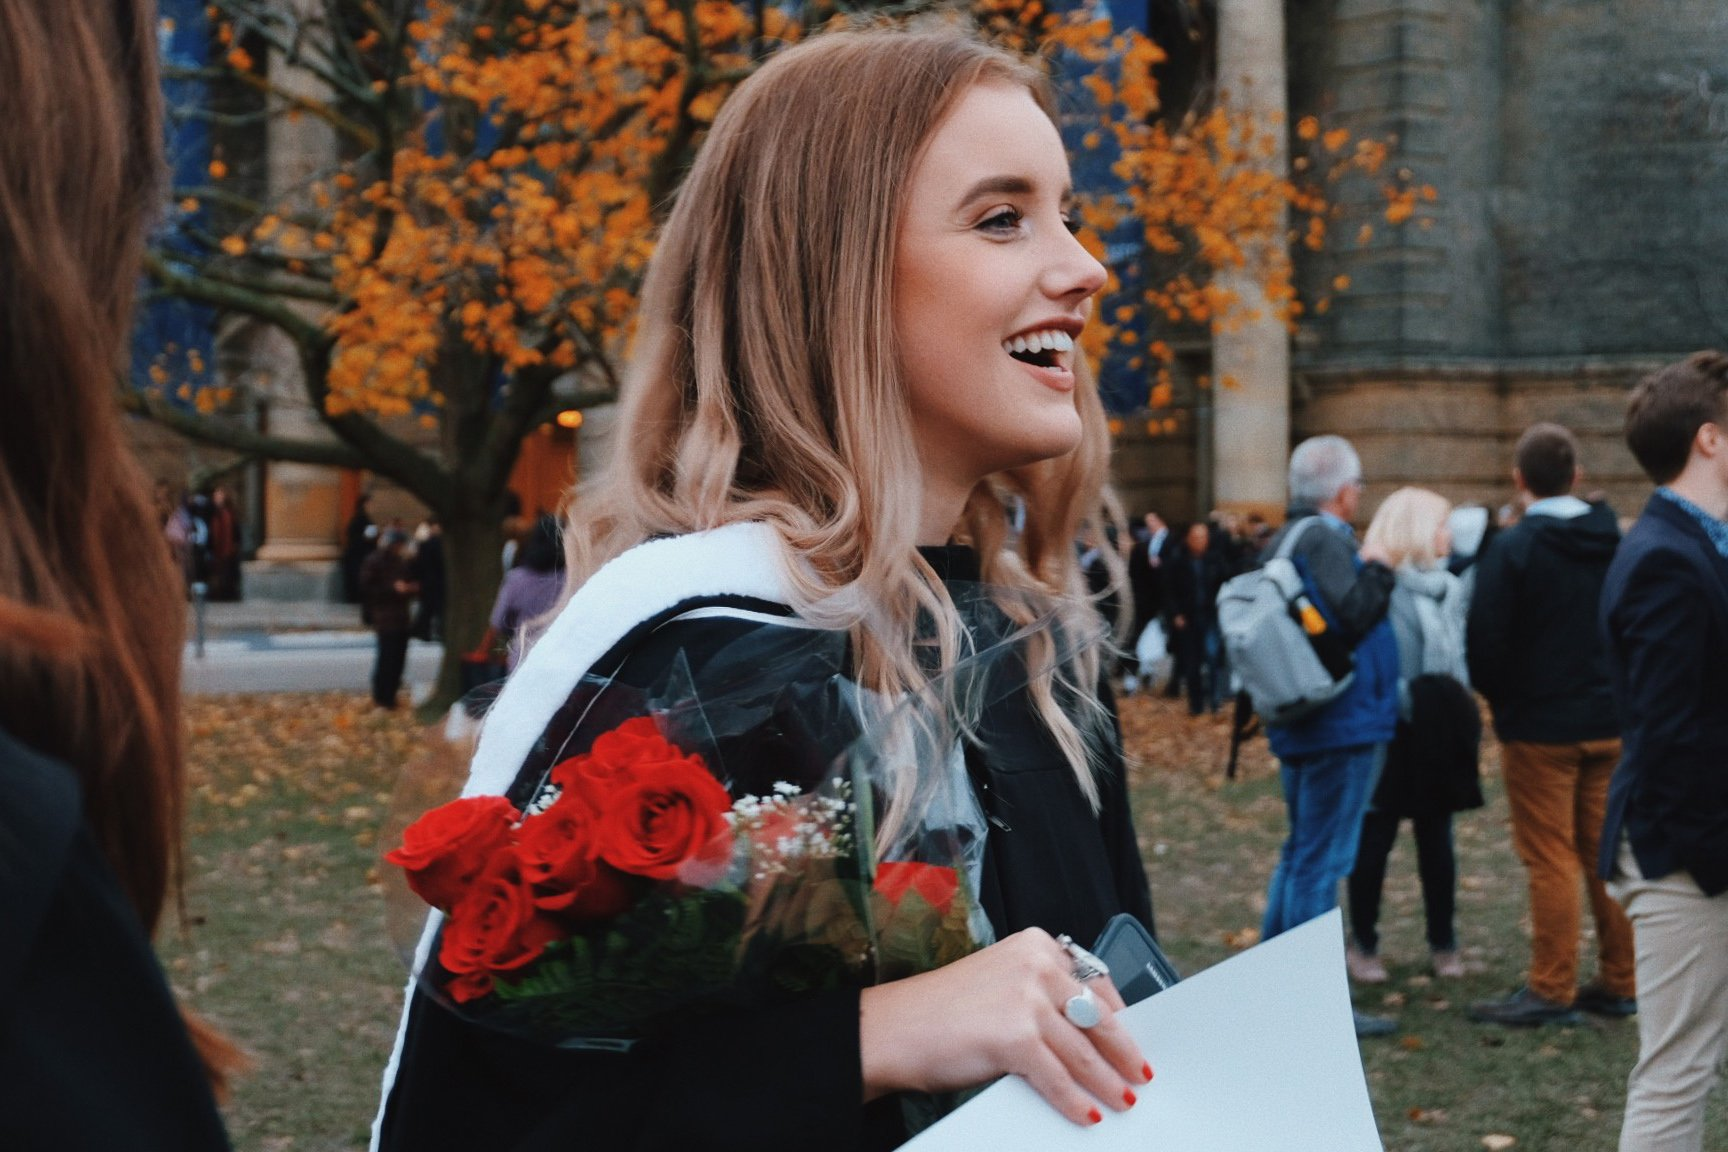 Student holding flowers at convocation ceremony